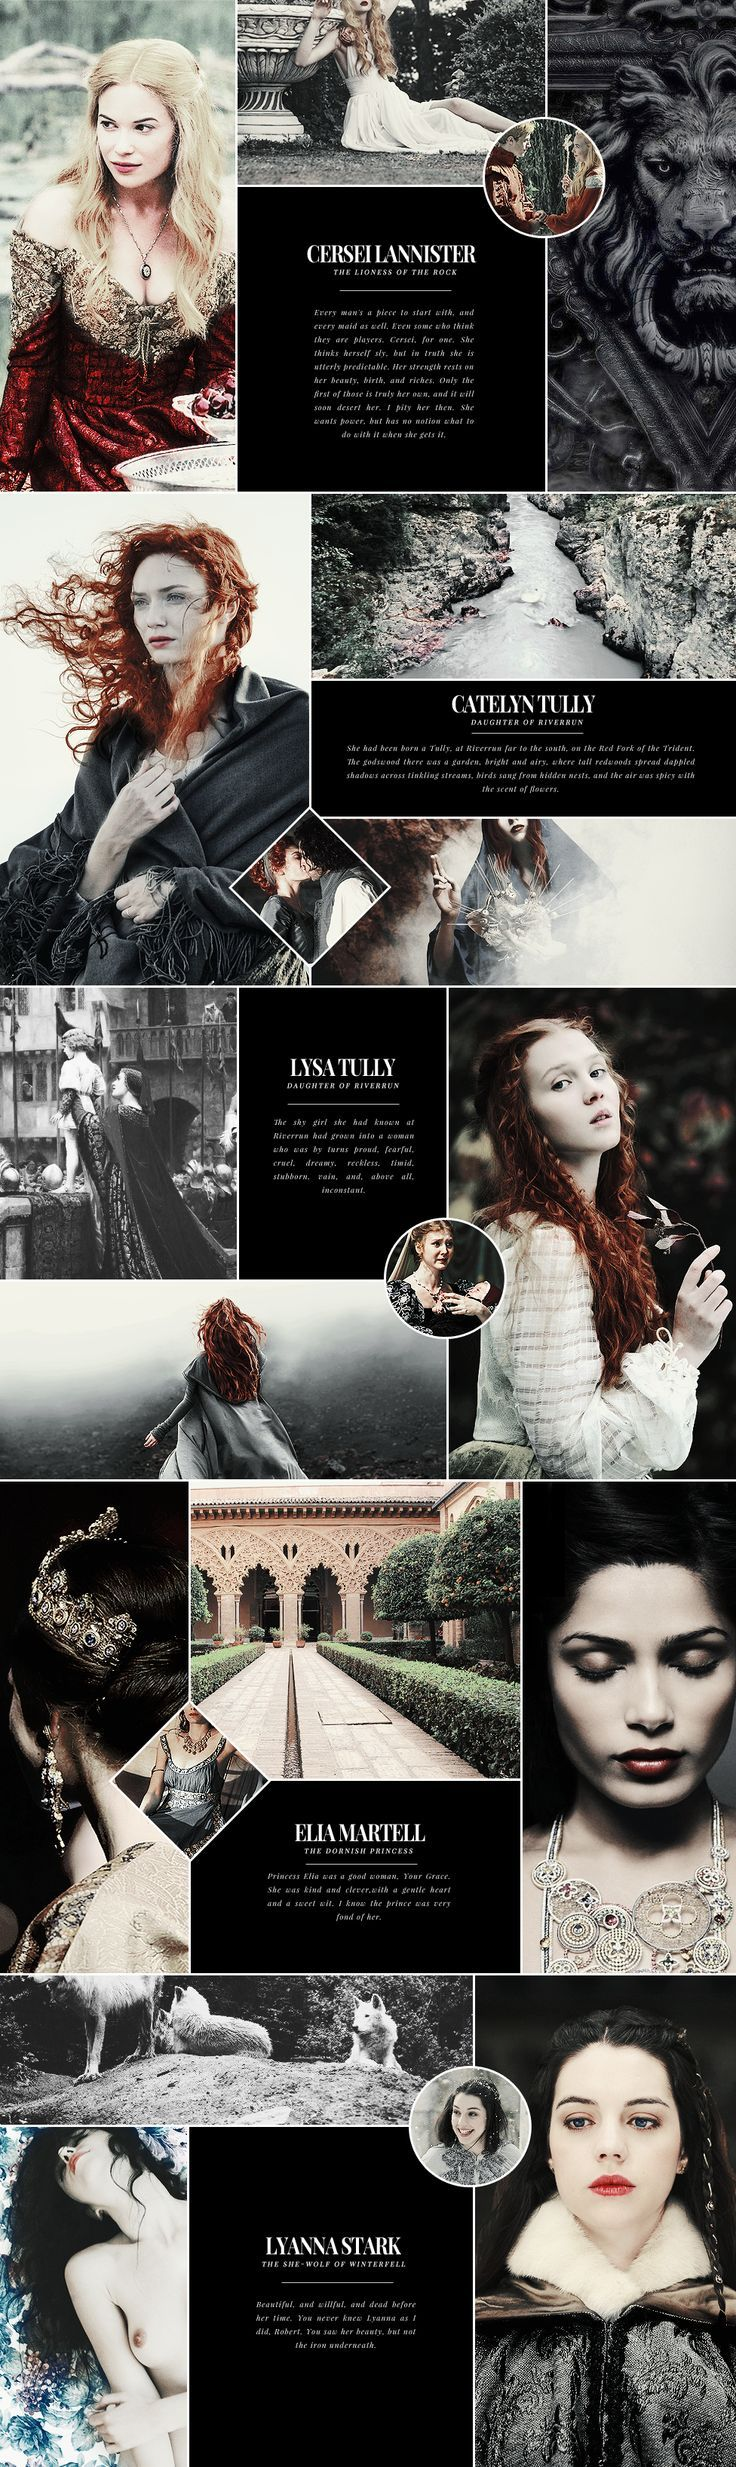 You have courage. Not battle courage perhaps but… I don't know, a kind of woman's courage. #asoiaf: